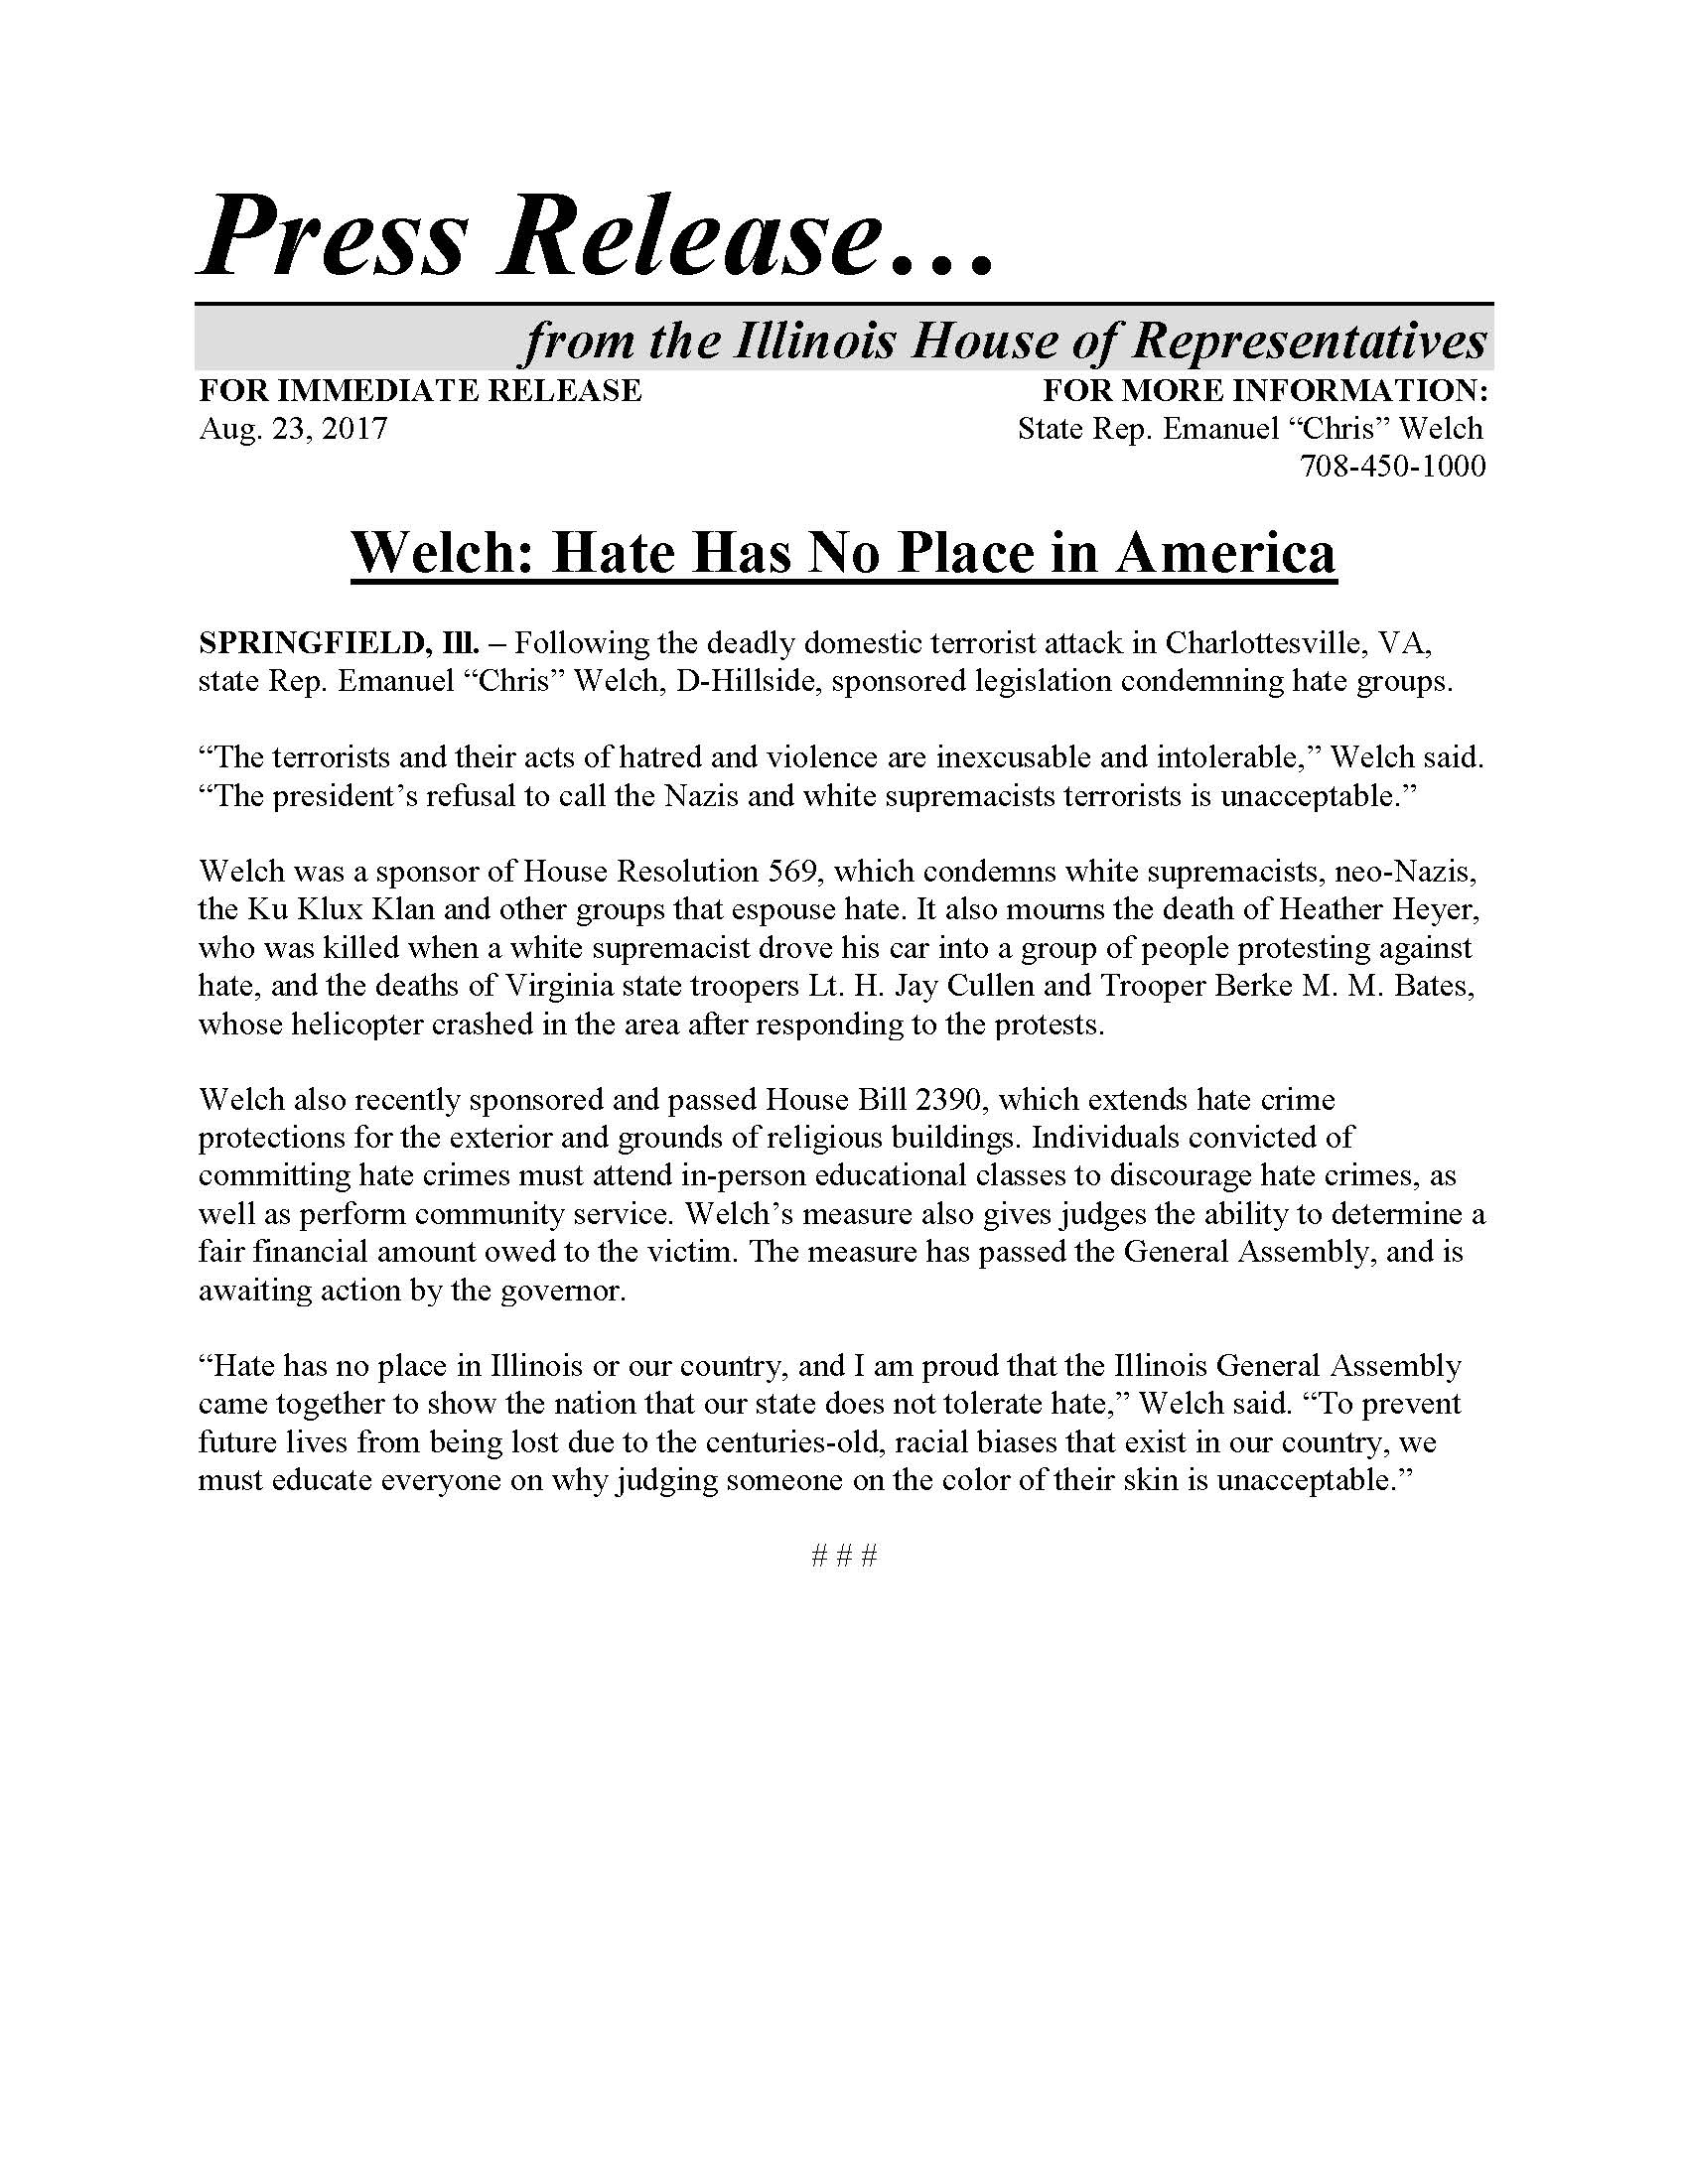 Welch: Hate Has No Place in America  (August 23, 2017)